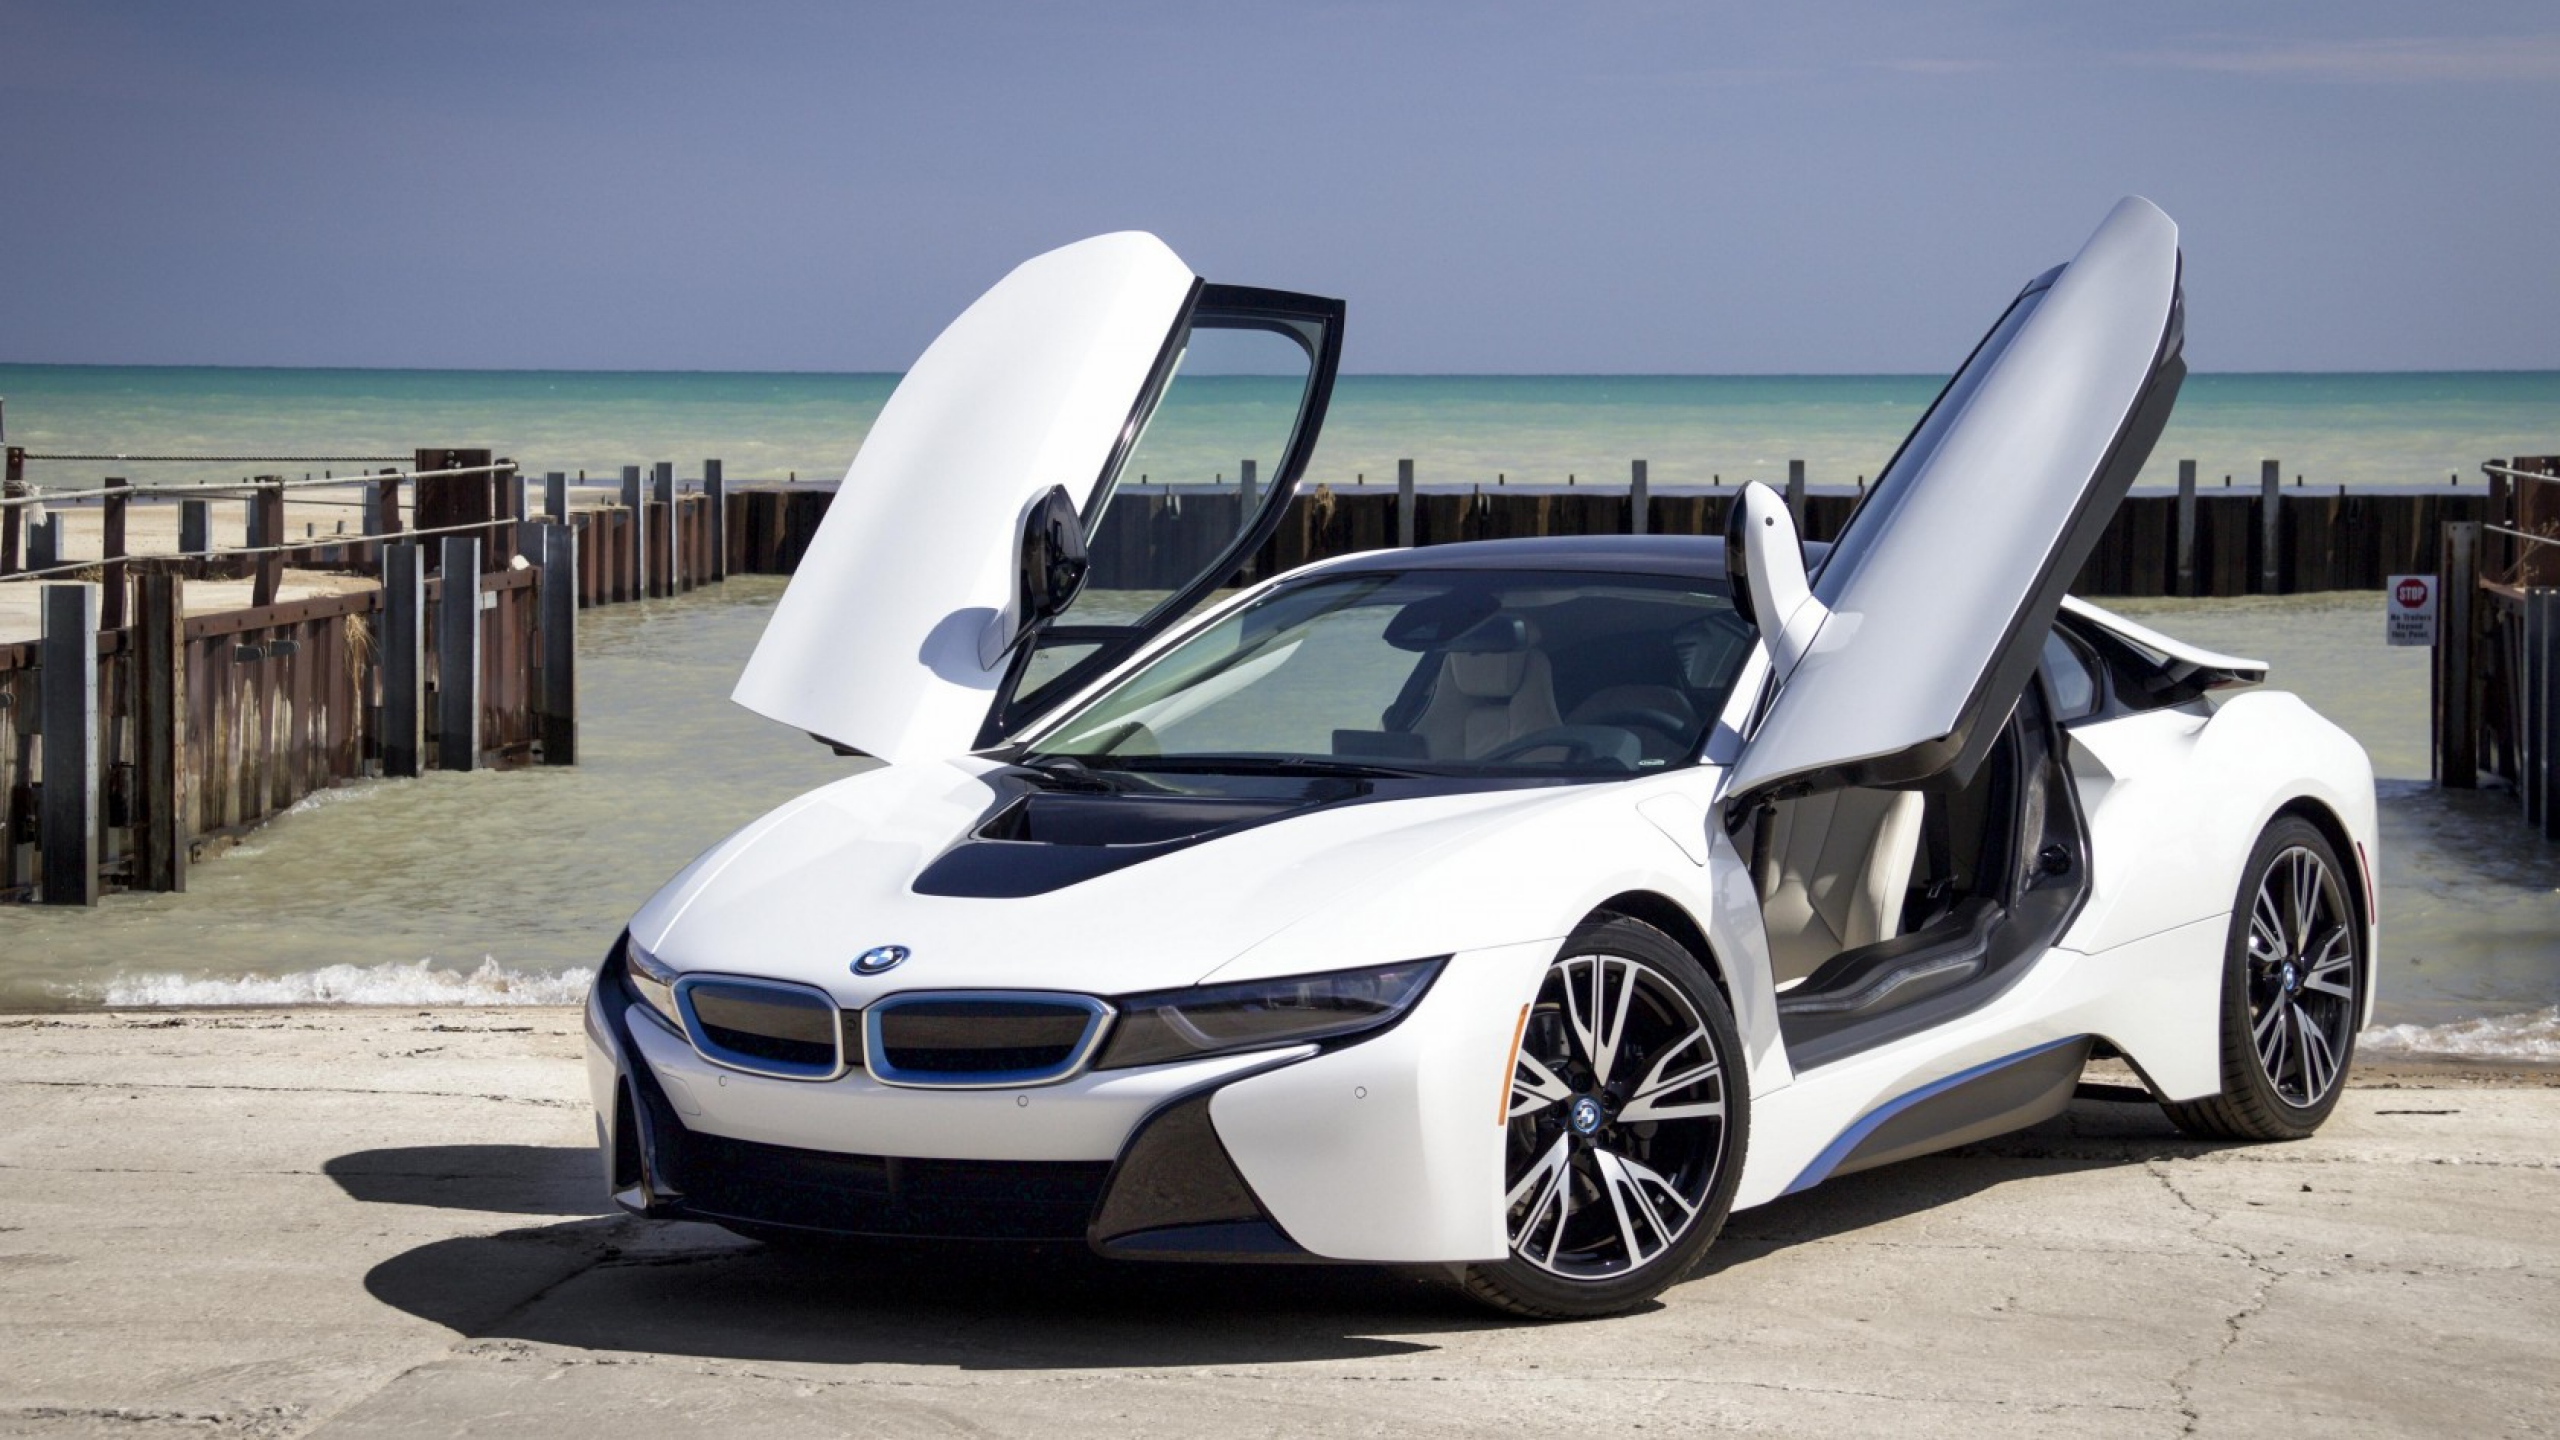 Bmw I8 Photo Download 2560x1440 Download Hd Wallpaper Wallpapertip